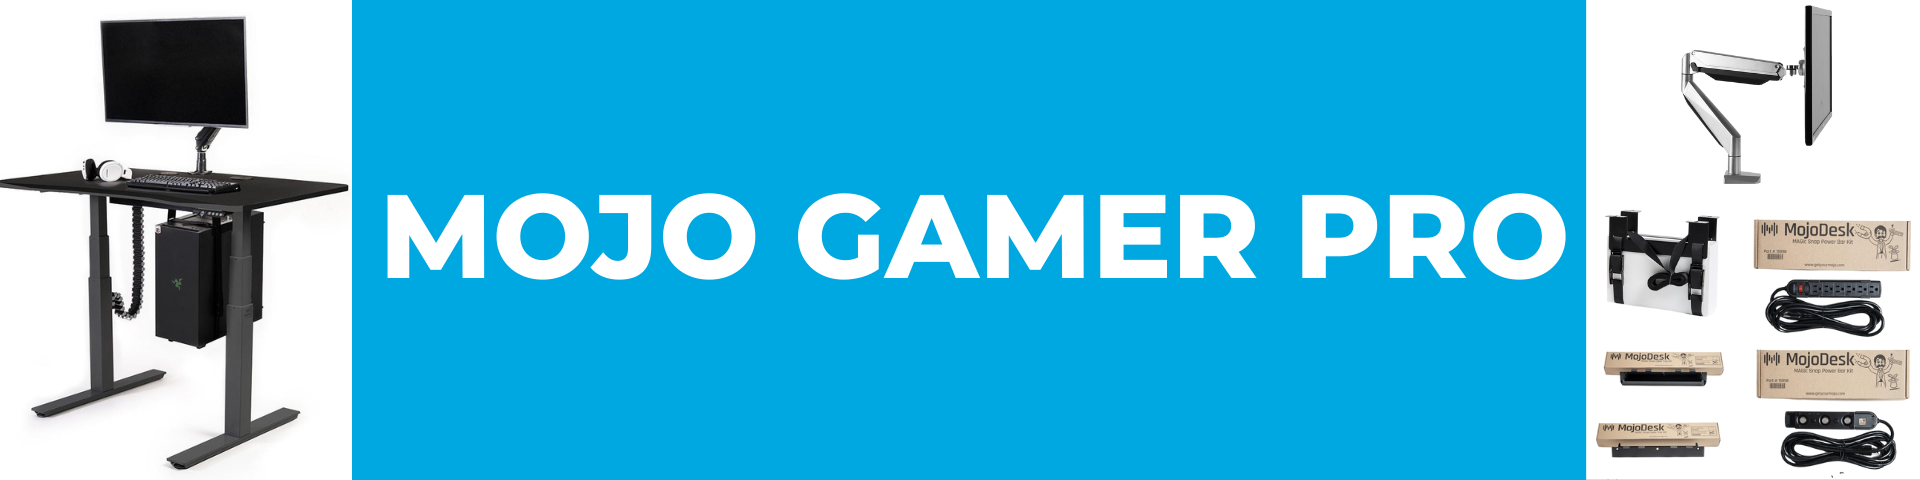 Standing Gaming Desk   Mojo Gamer Pro by MojoDesk Collection Banner   Gaming Desk Accessory Bundle